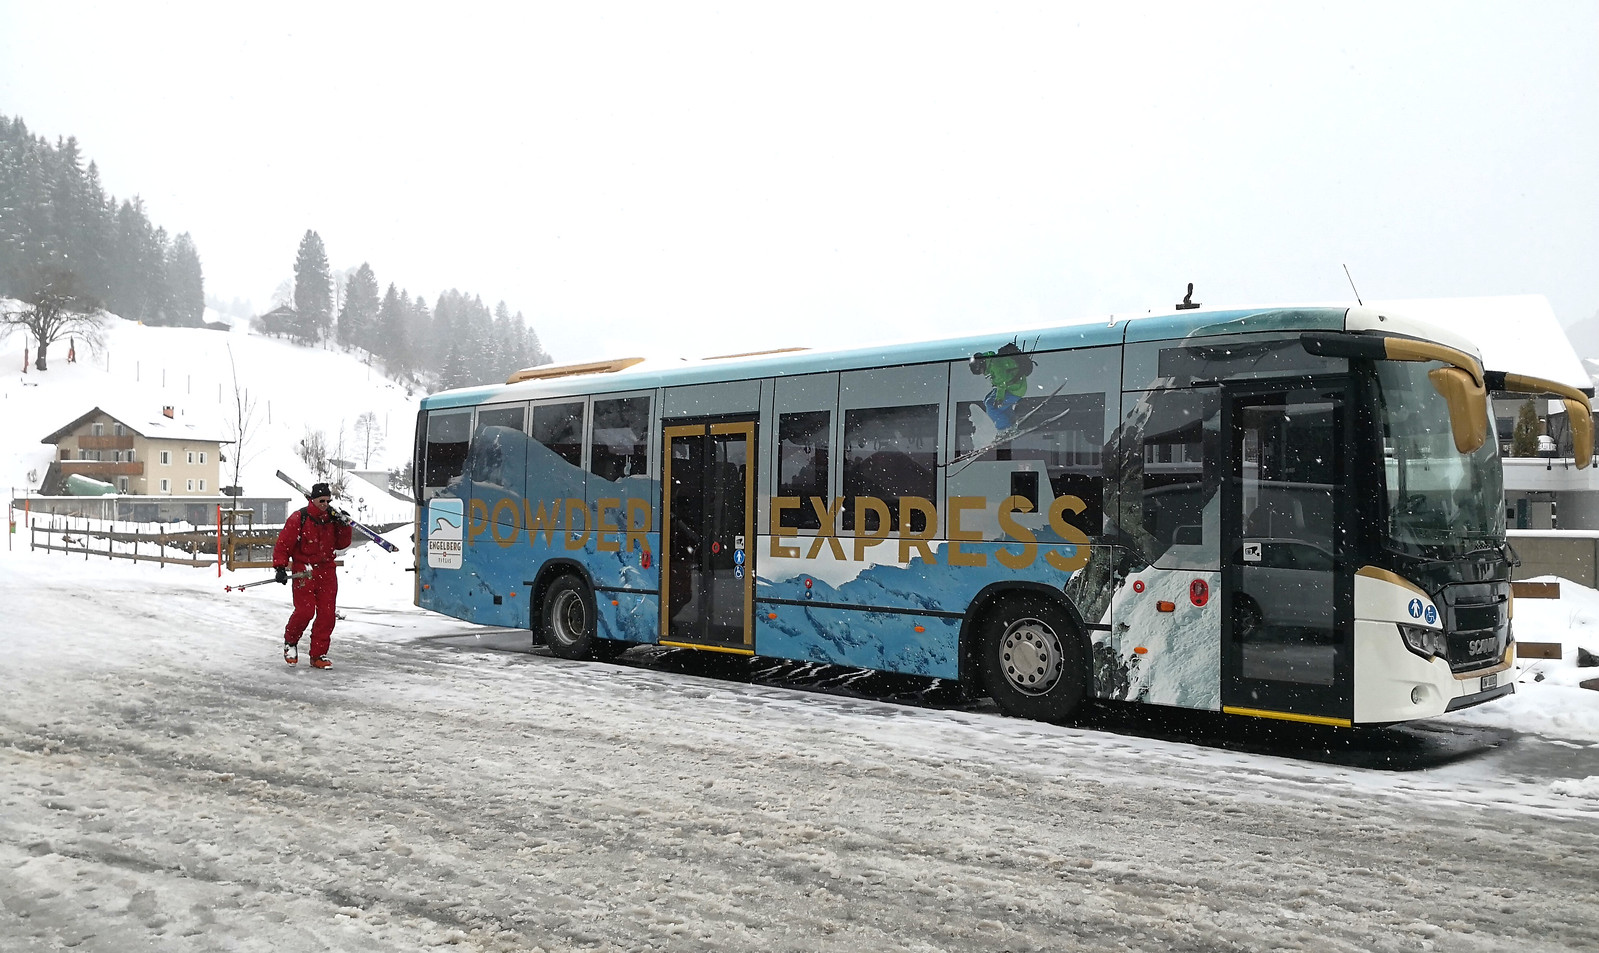 Powder Express bus